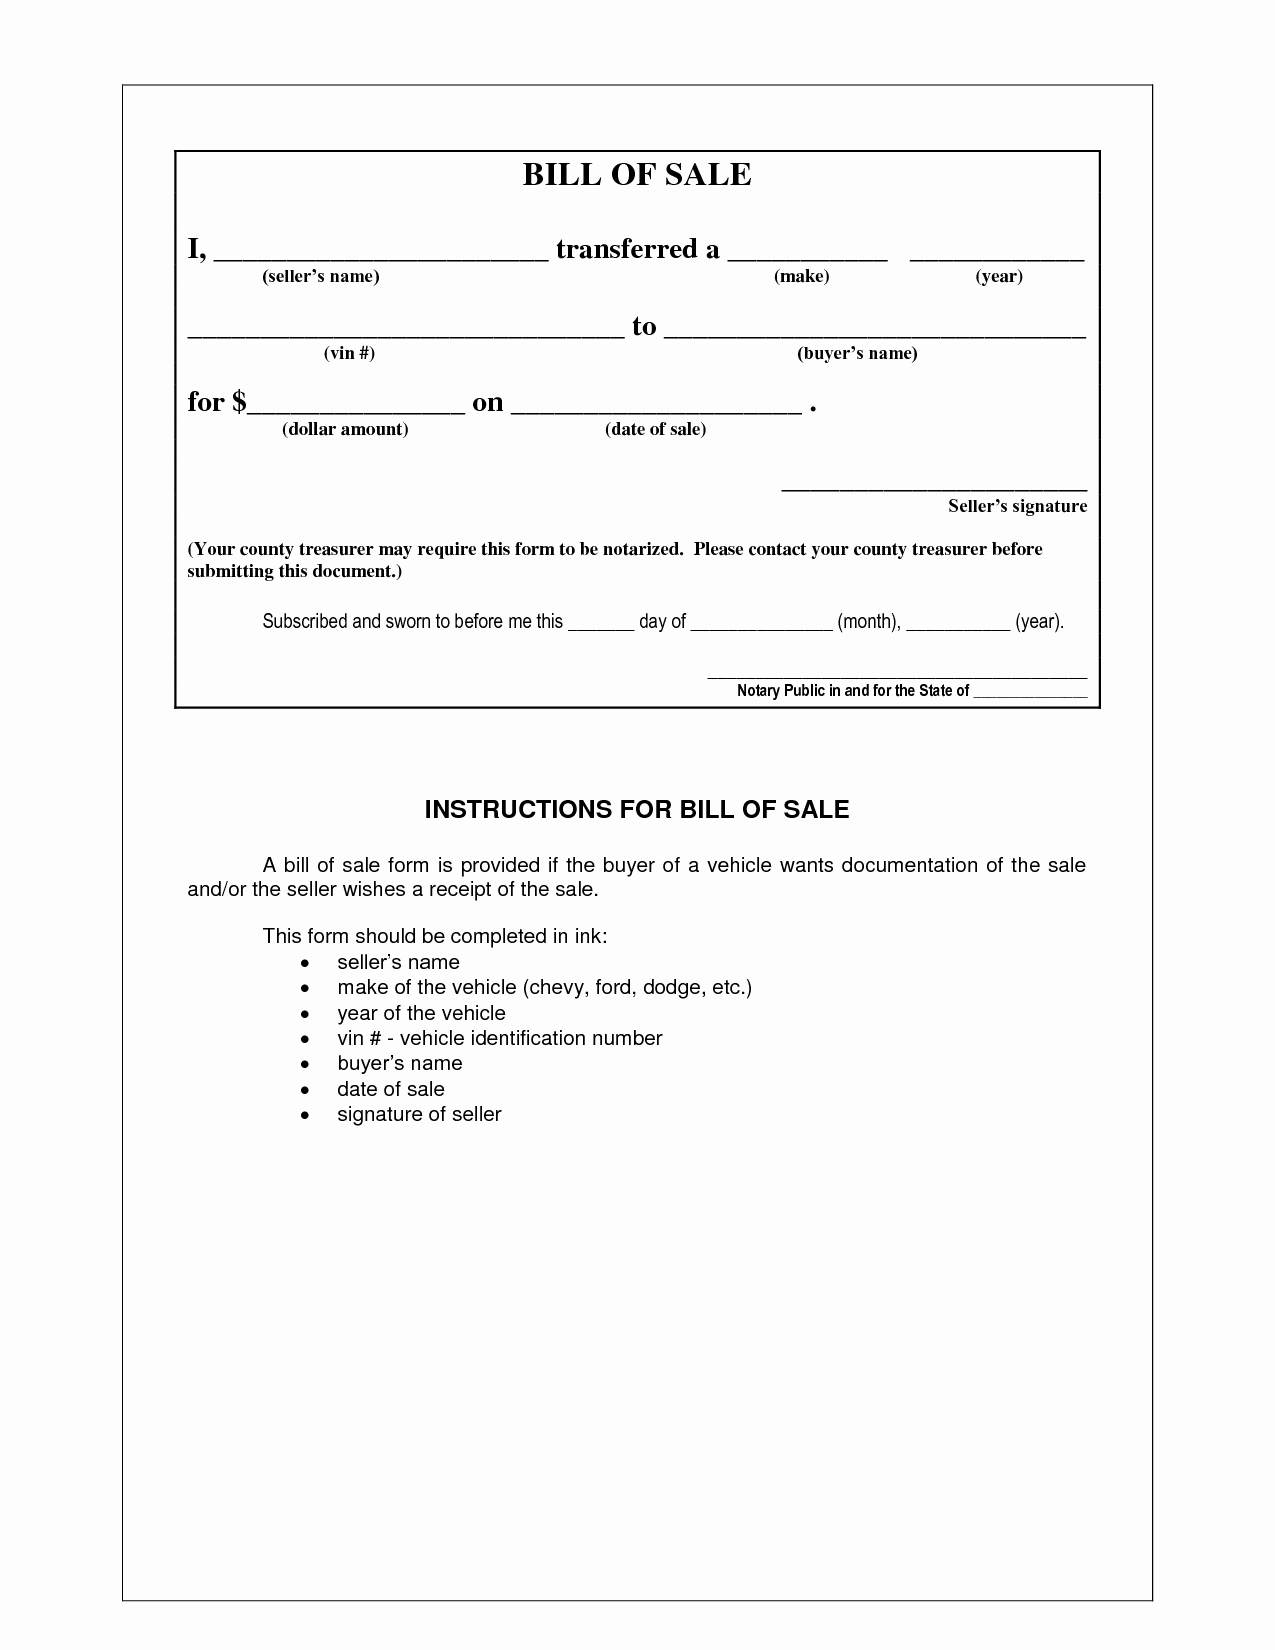 Form Of Bill Of Sale Fresh Picture 5 Of 17 Example Bill Sale form